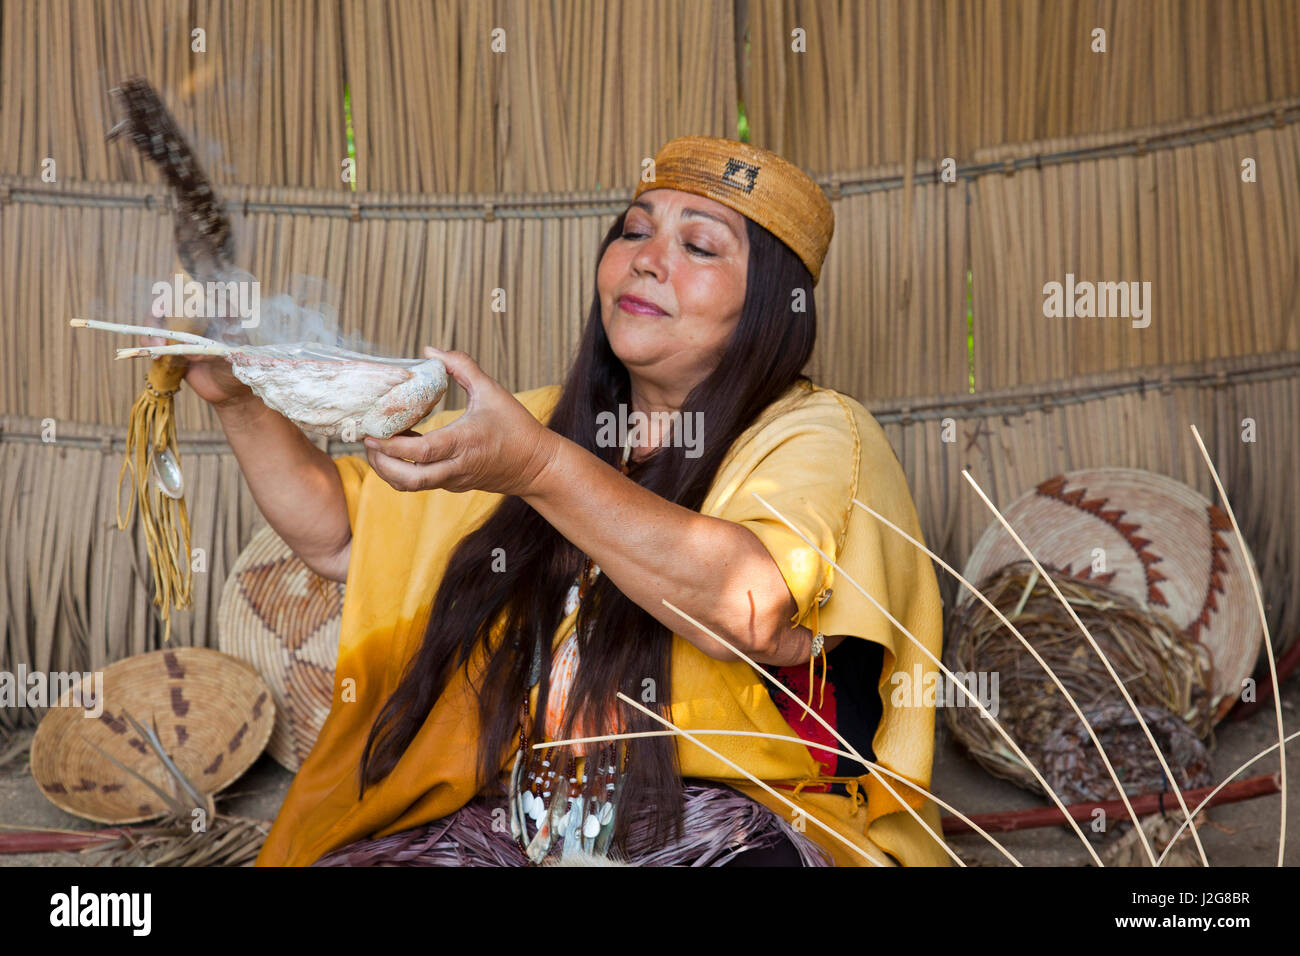 Native woman of the Acjachemen Nation (San Juan Capistrano Mission Indians) burns dried sage in an abalone shell and uses a feather to distribute the smoke which is used as a cleansing medicine inside of a traditional Tule reed shelter. (MR)